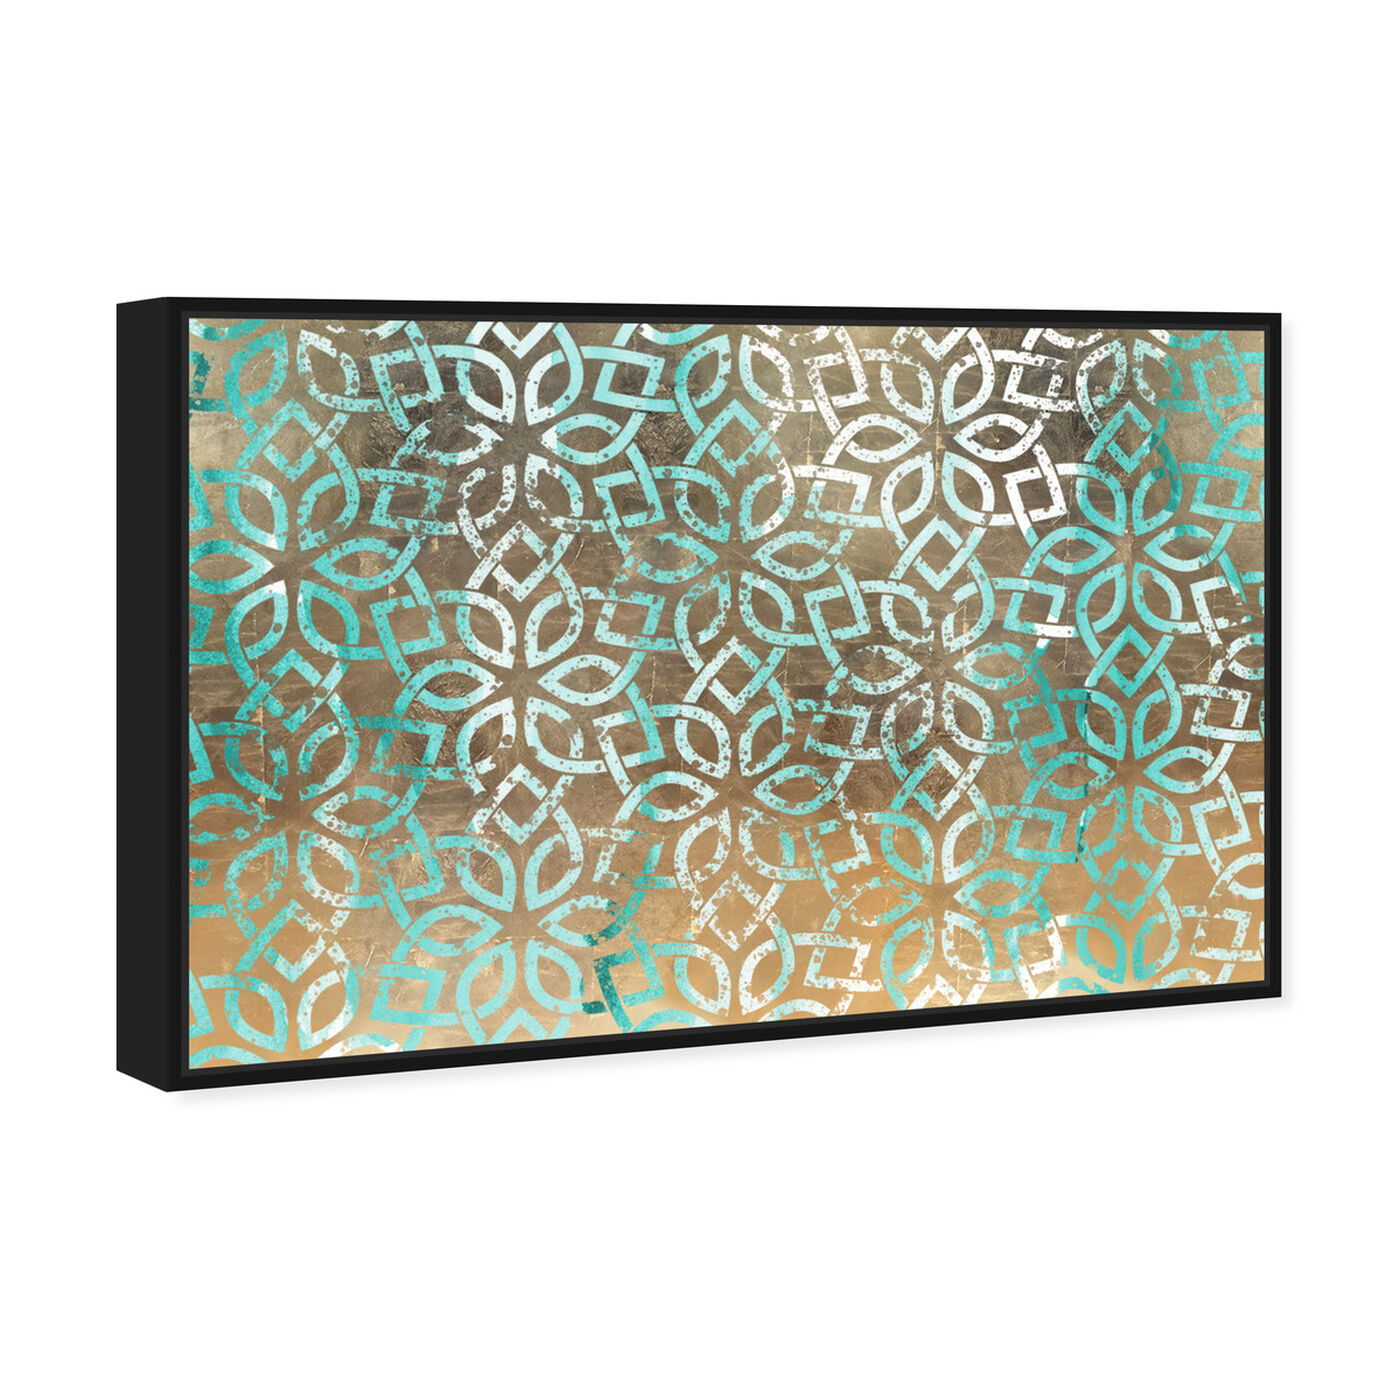 Angled view of Regal Jade Lattice featuring abstract and patterns art.